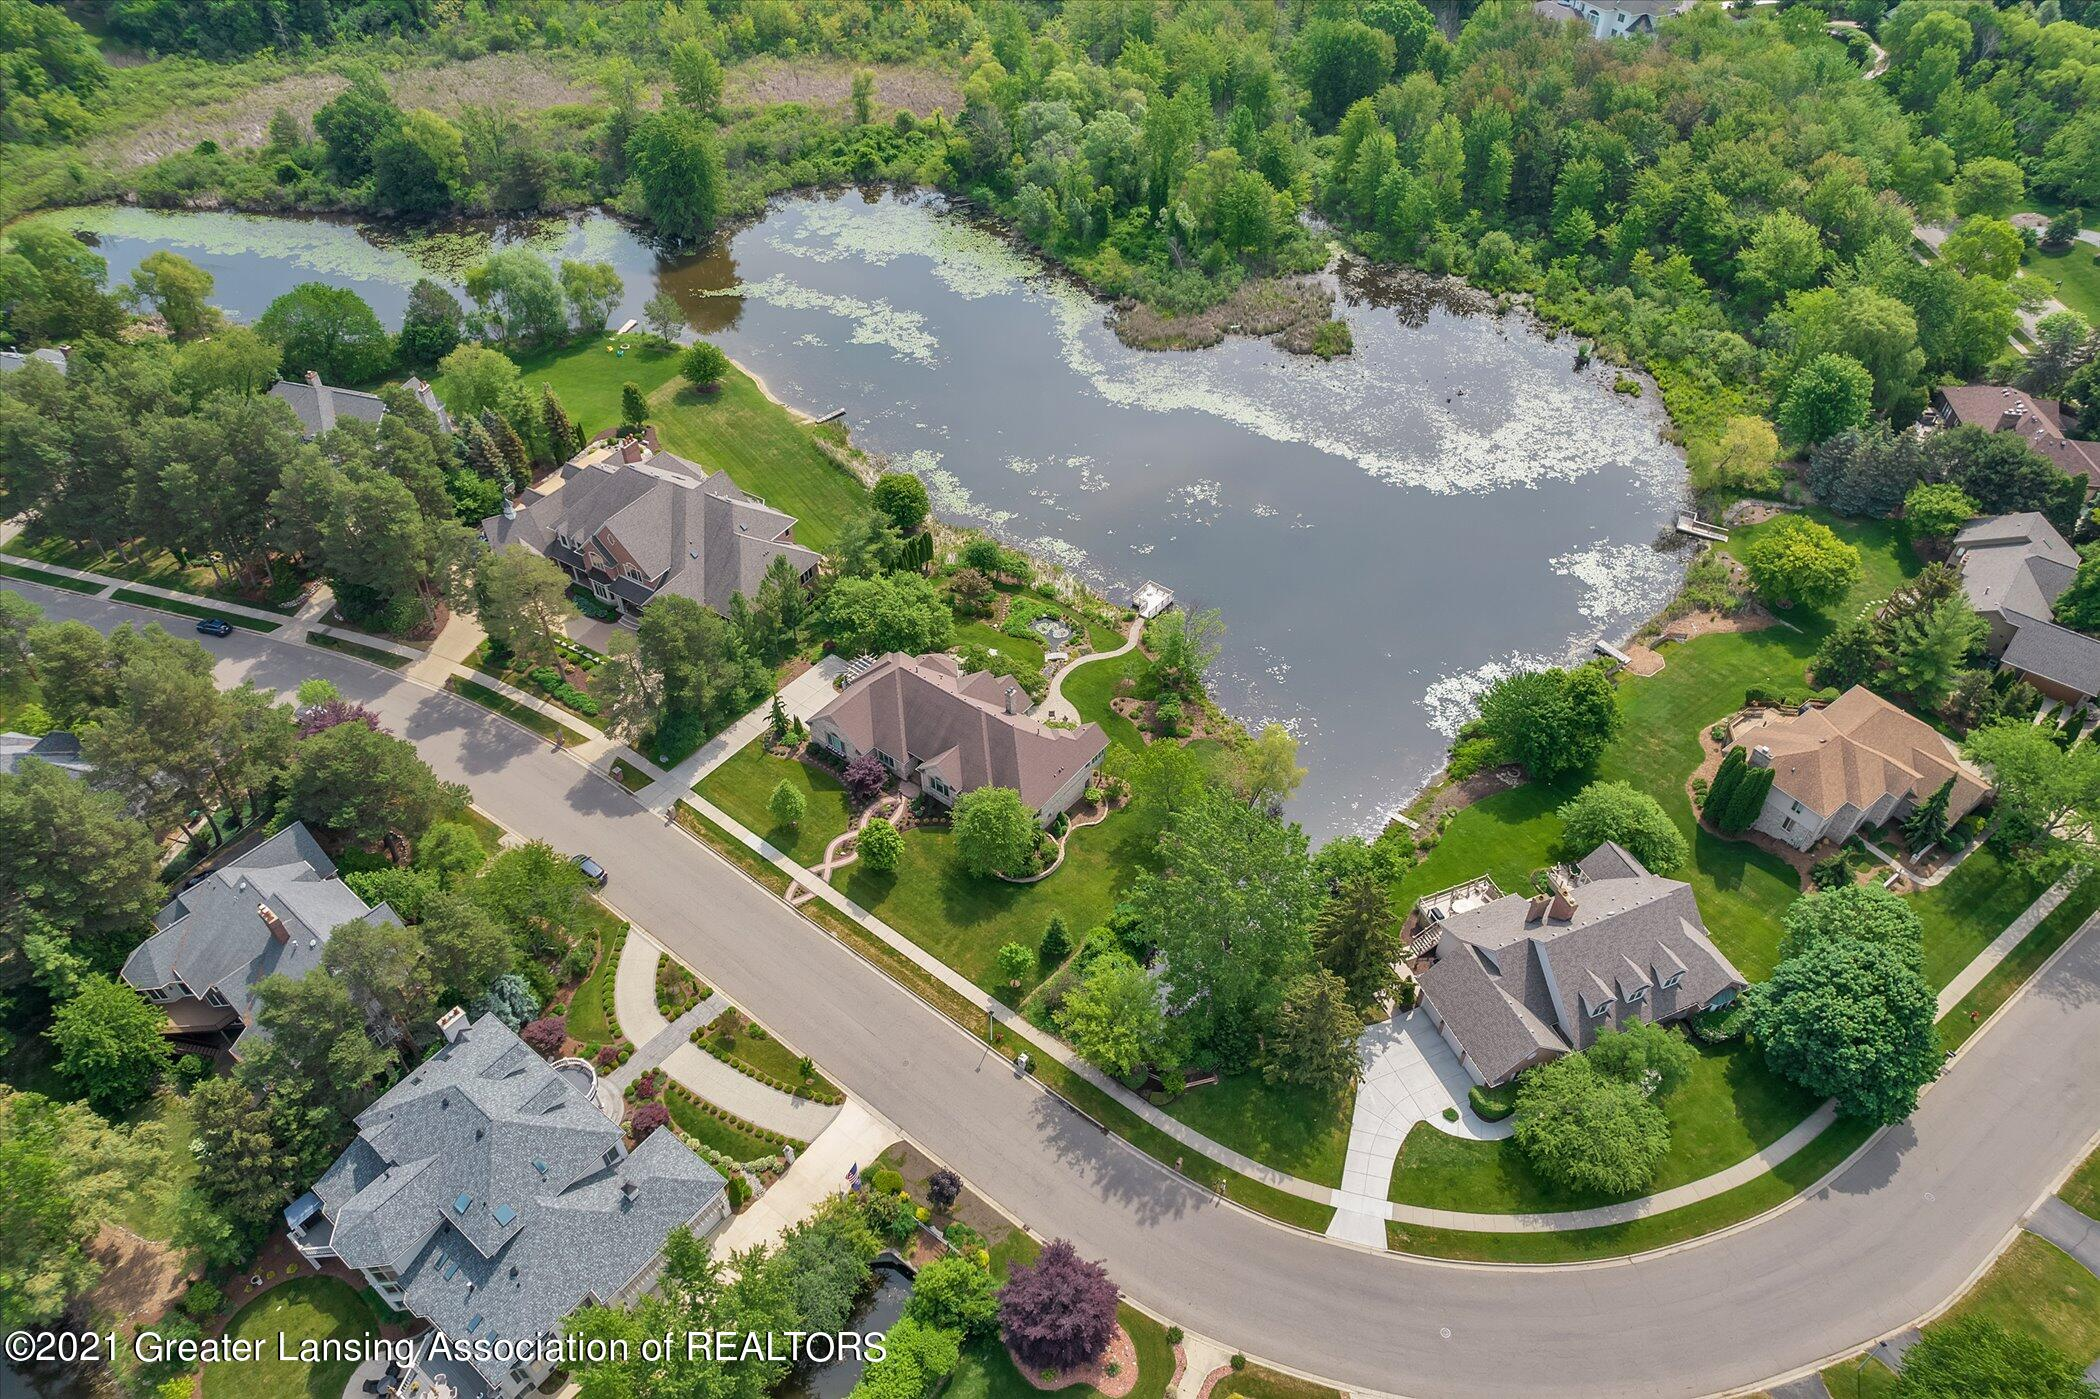 6330 Pine Hollow Dr - EXTERIOR Aerial View - 65